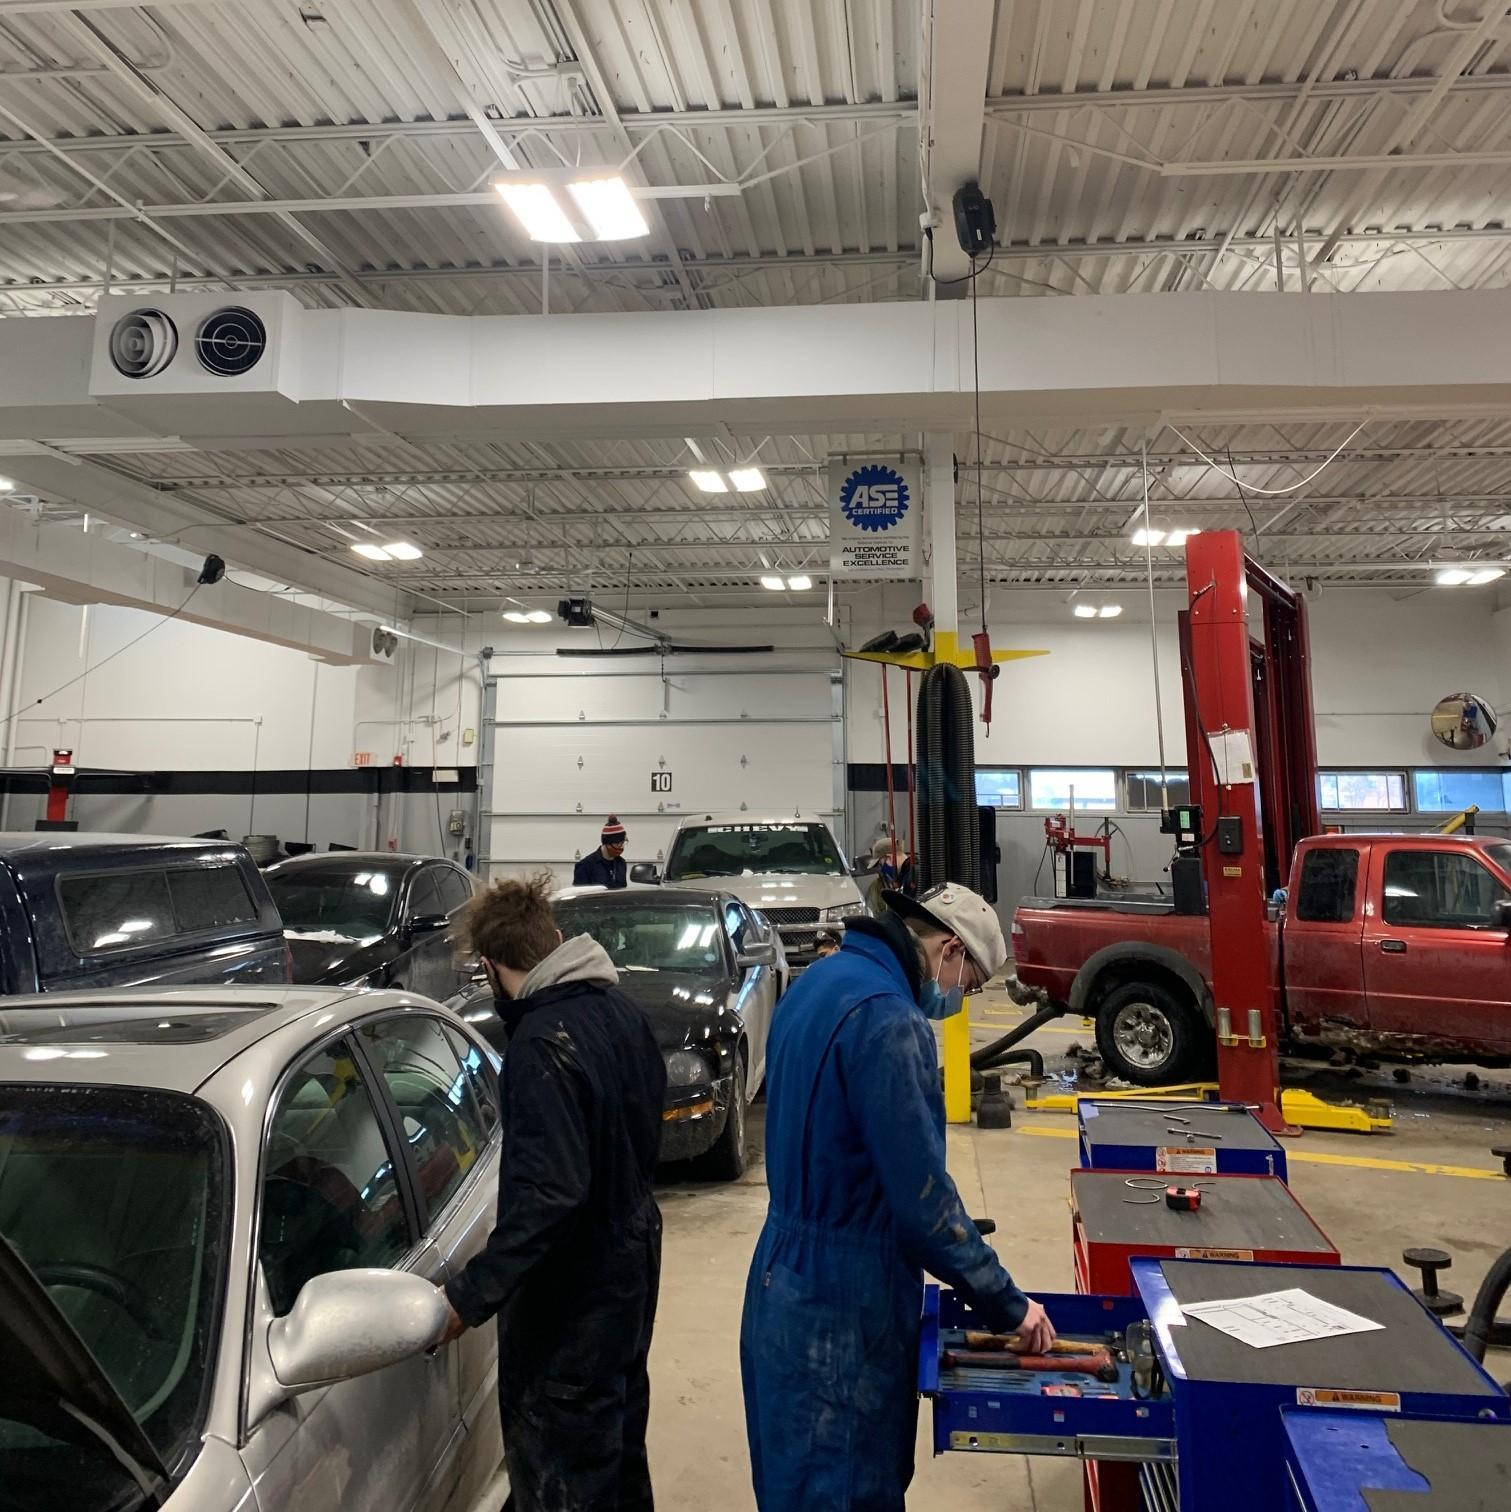 Auto students working in the auto shop